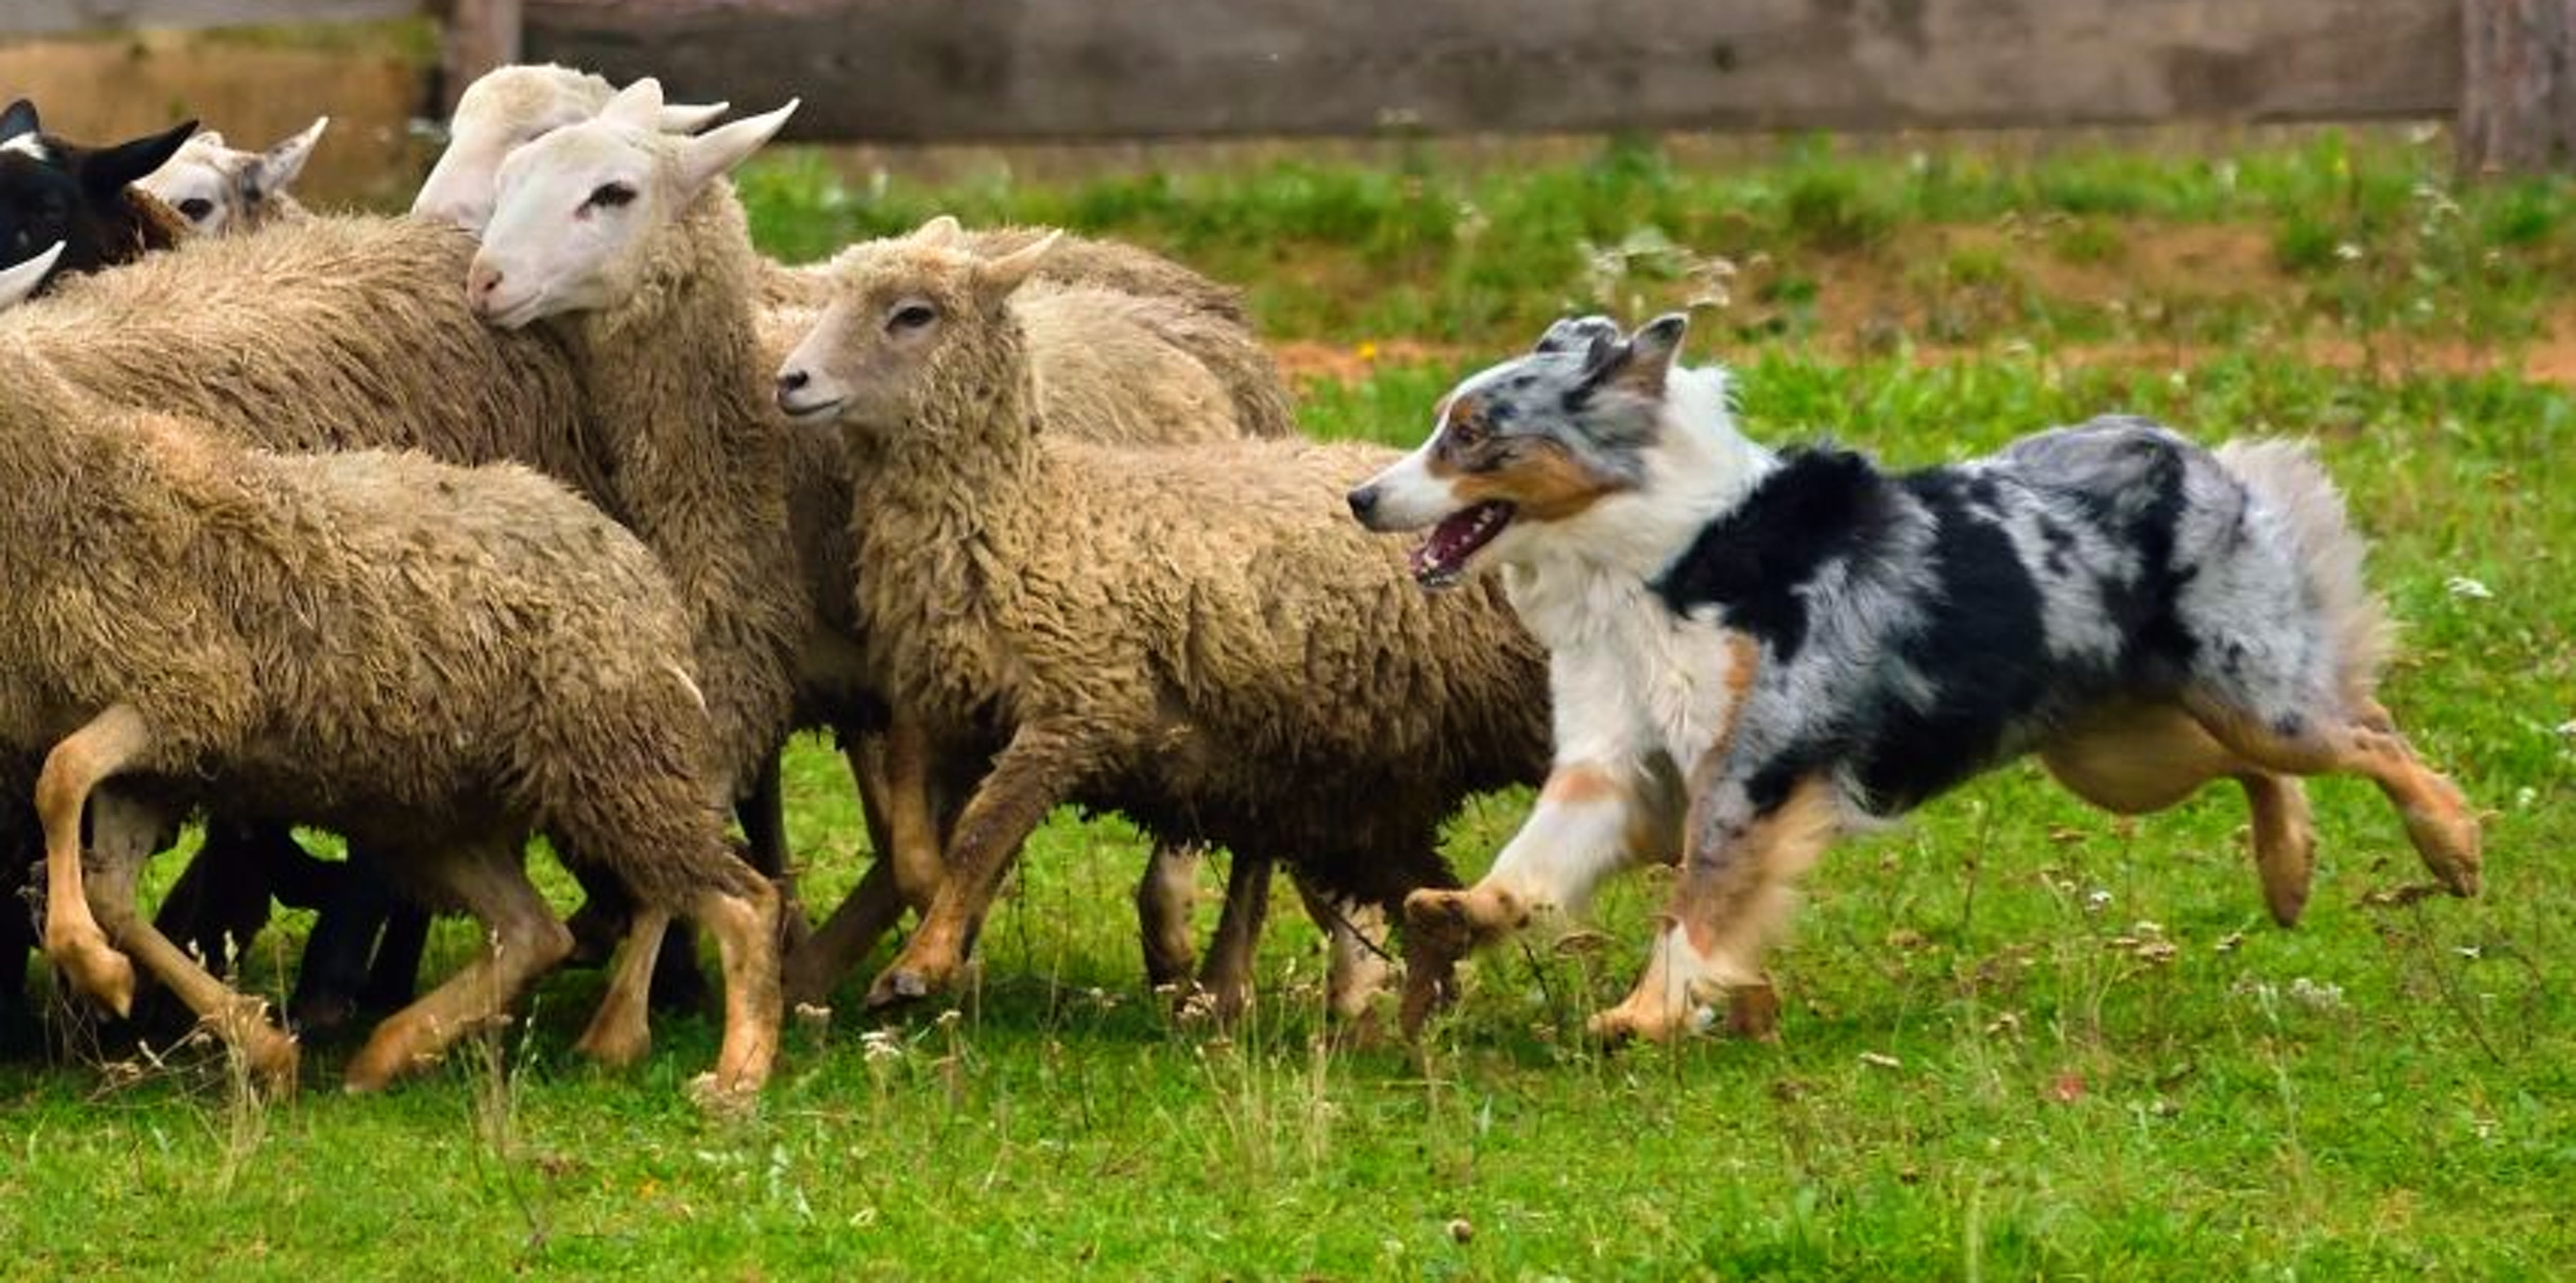 Australian Shepherd herding a group of sheep